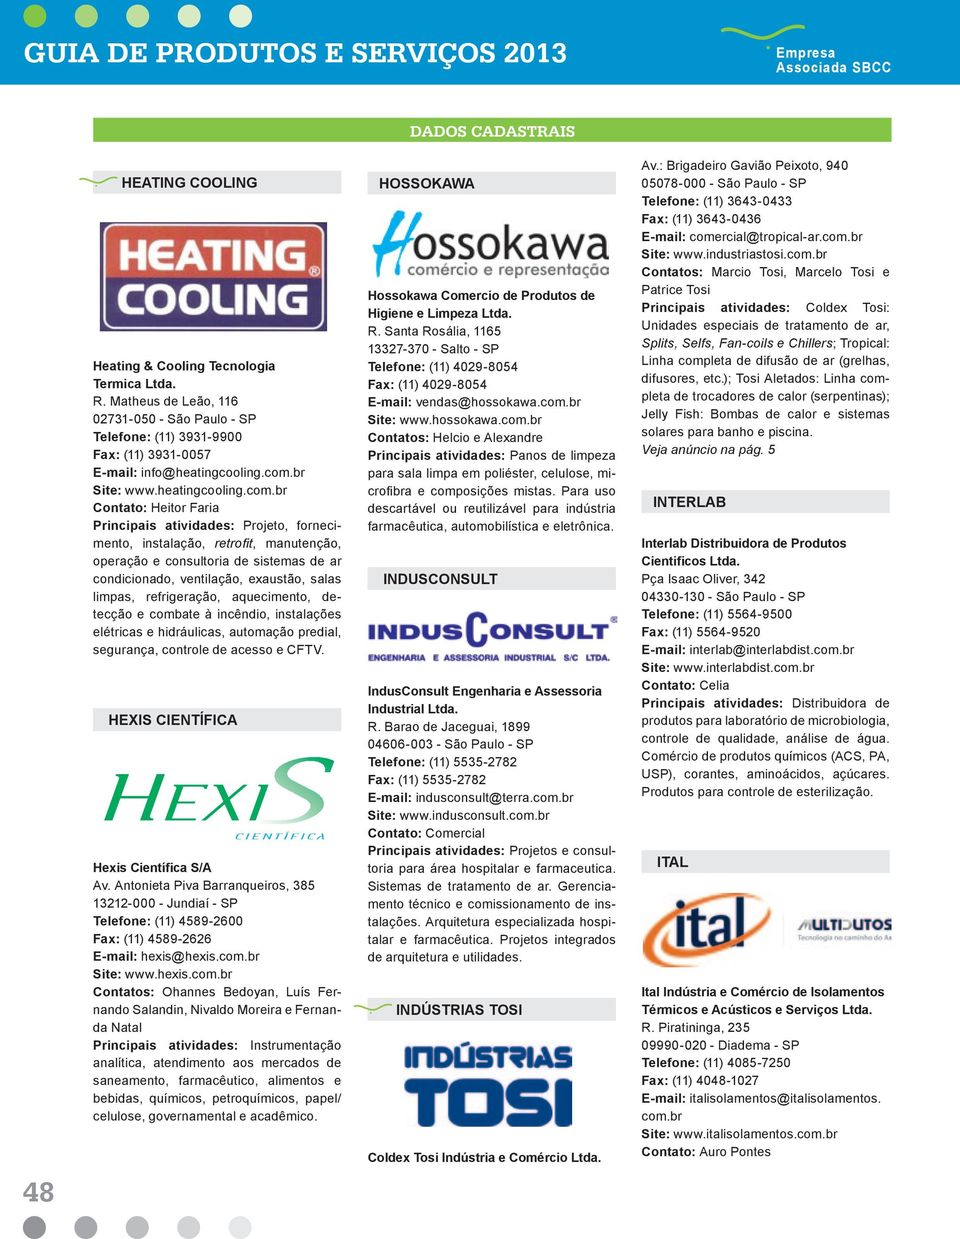 br Site: www.heatingcooling.com.